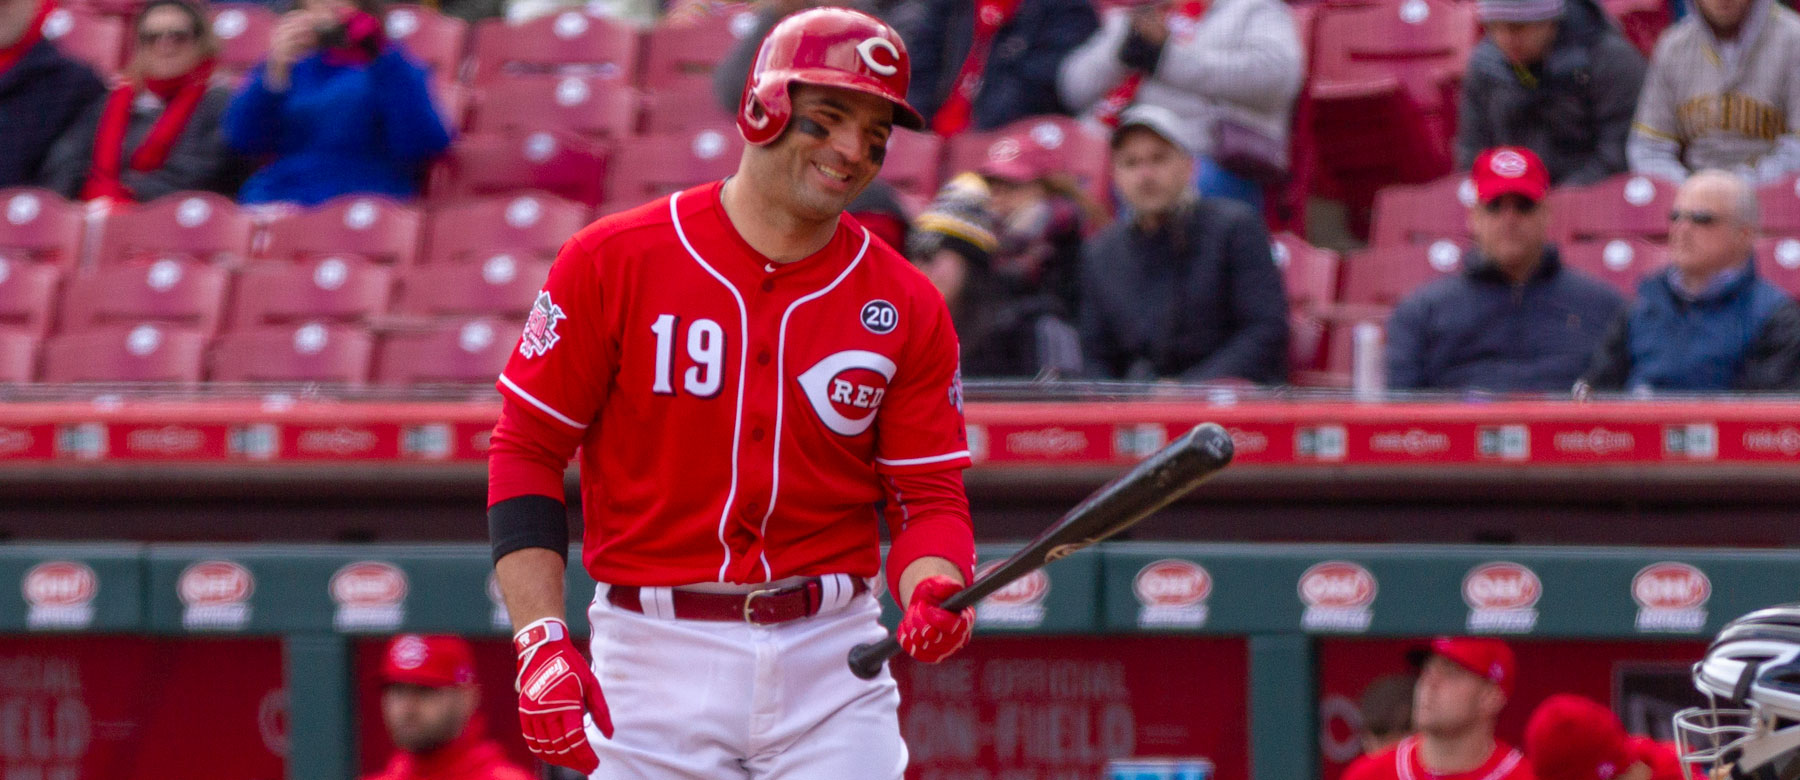 Joey Votto and the Reds wins and losses